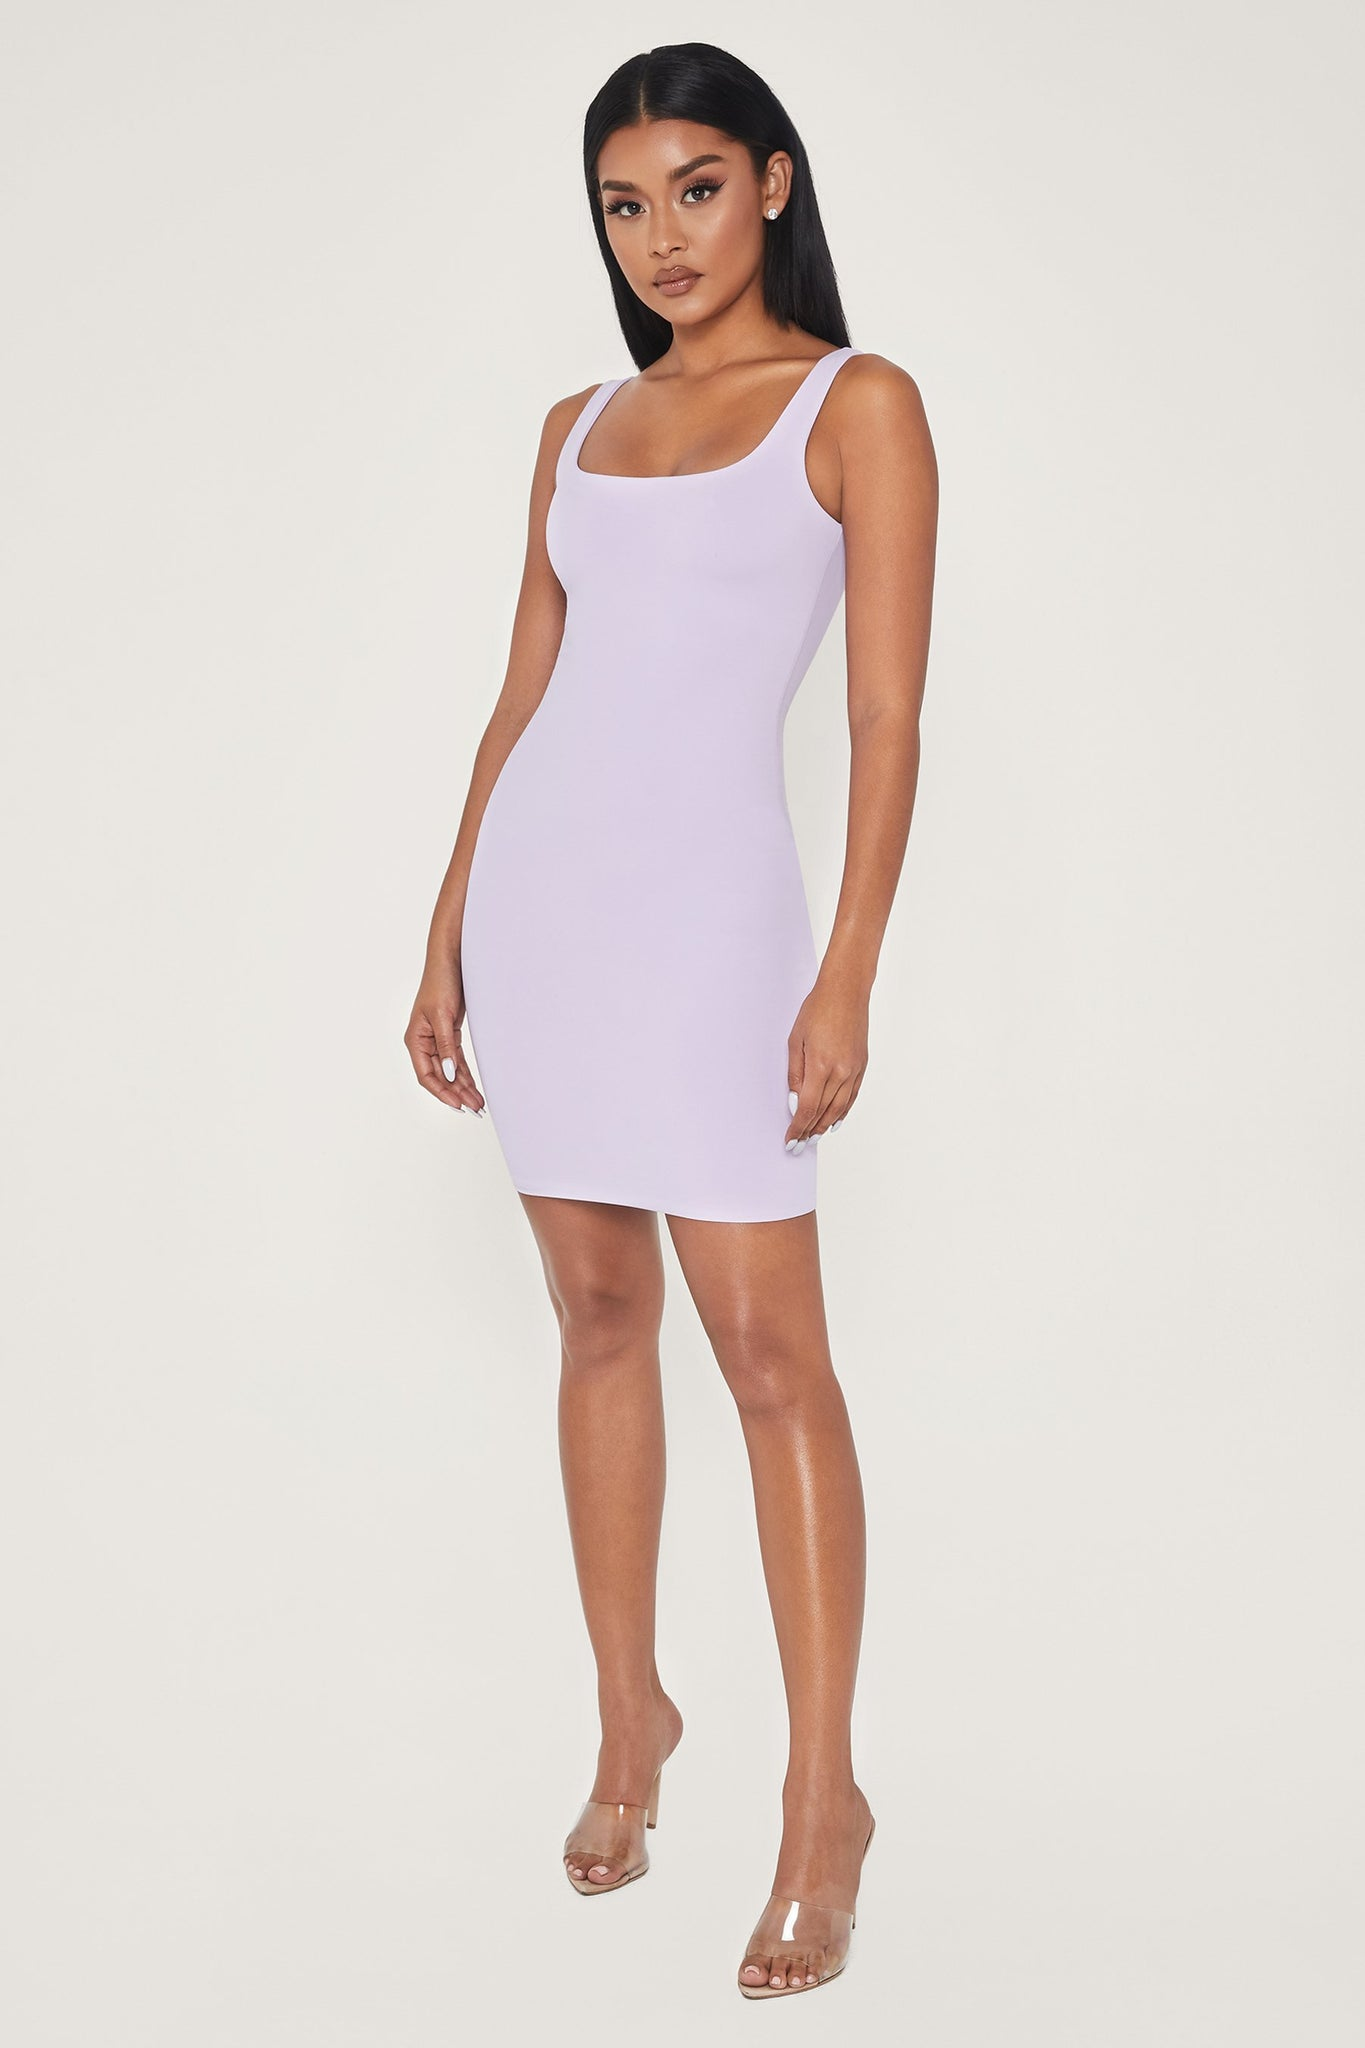 Estelle Thick Strap Square Neck Mini Dress - Lilac - MESHKI